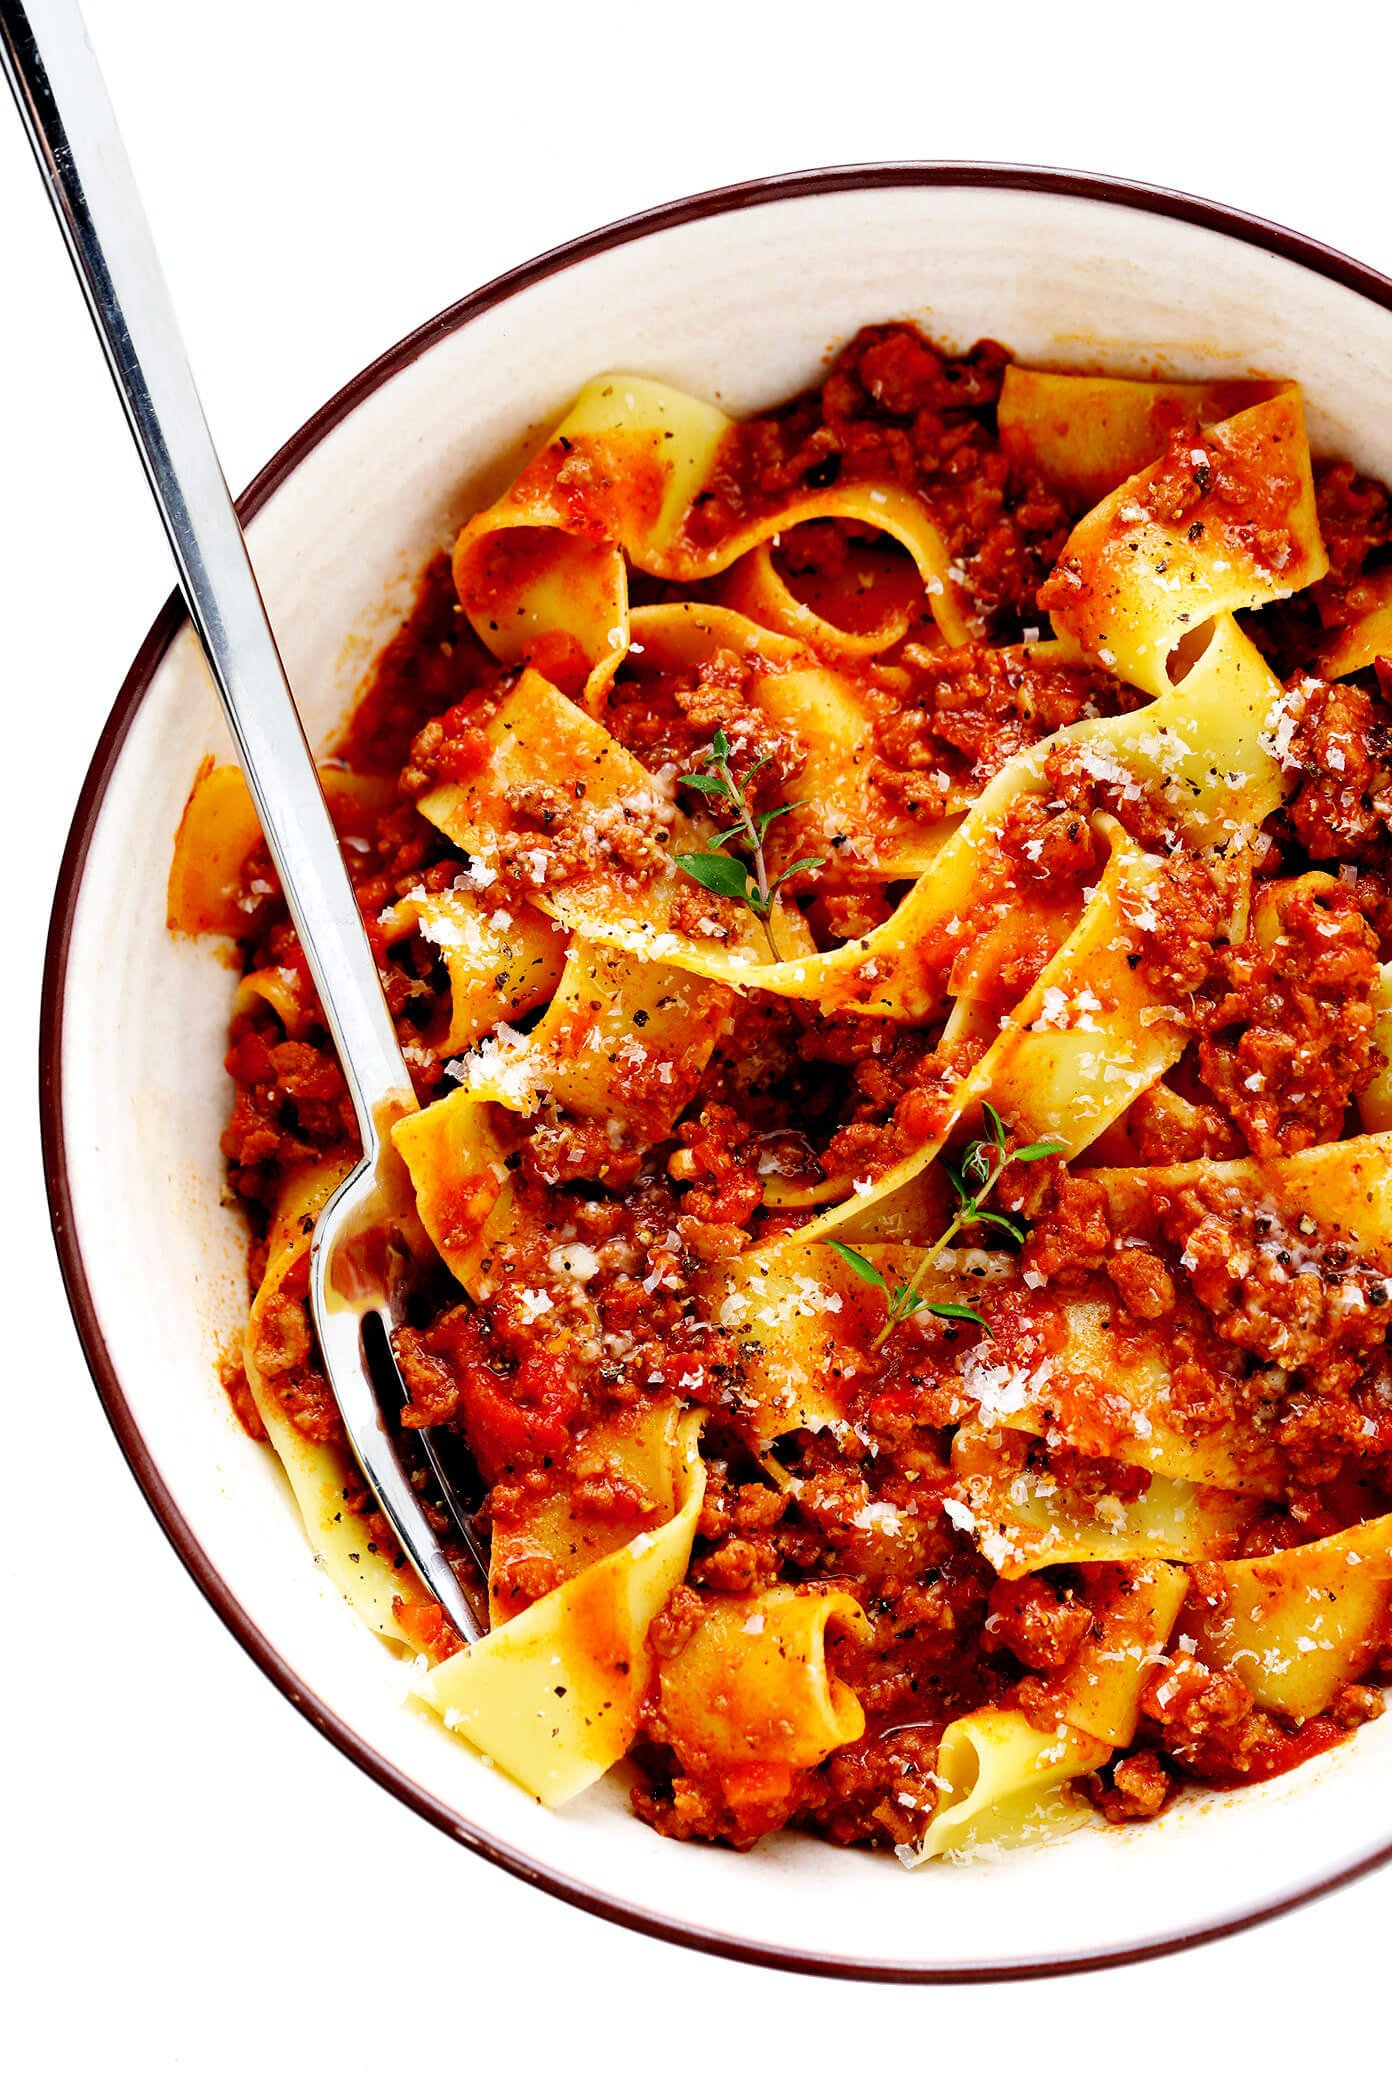 Pasta Bolognese Recipe with Pappardelle In Bowl